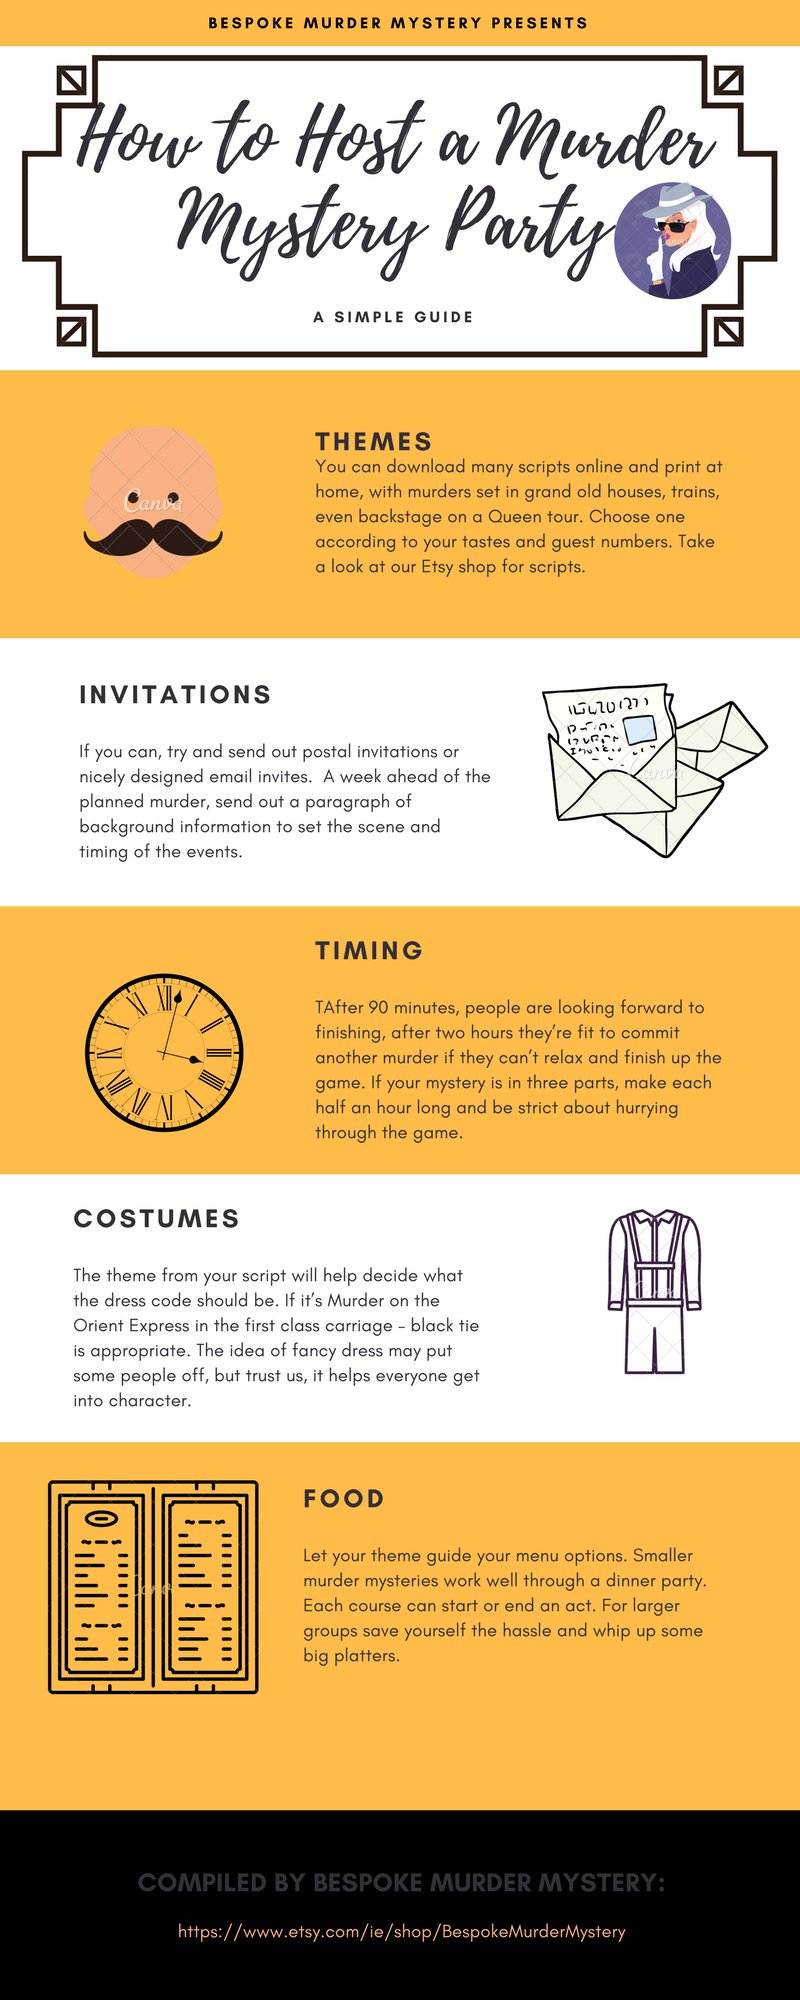 Top tips to host a murder mystery party